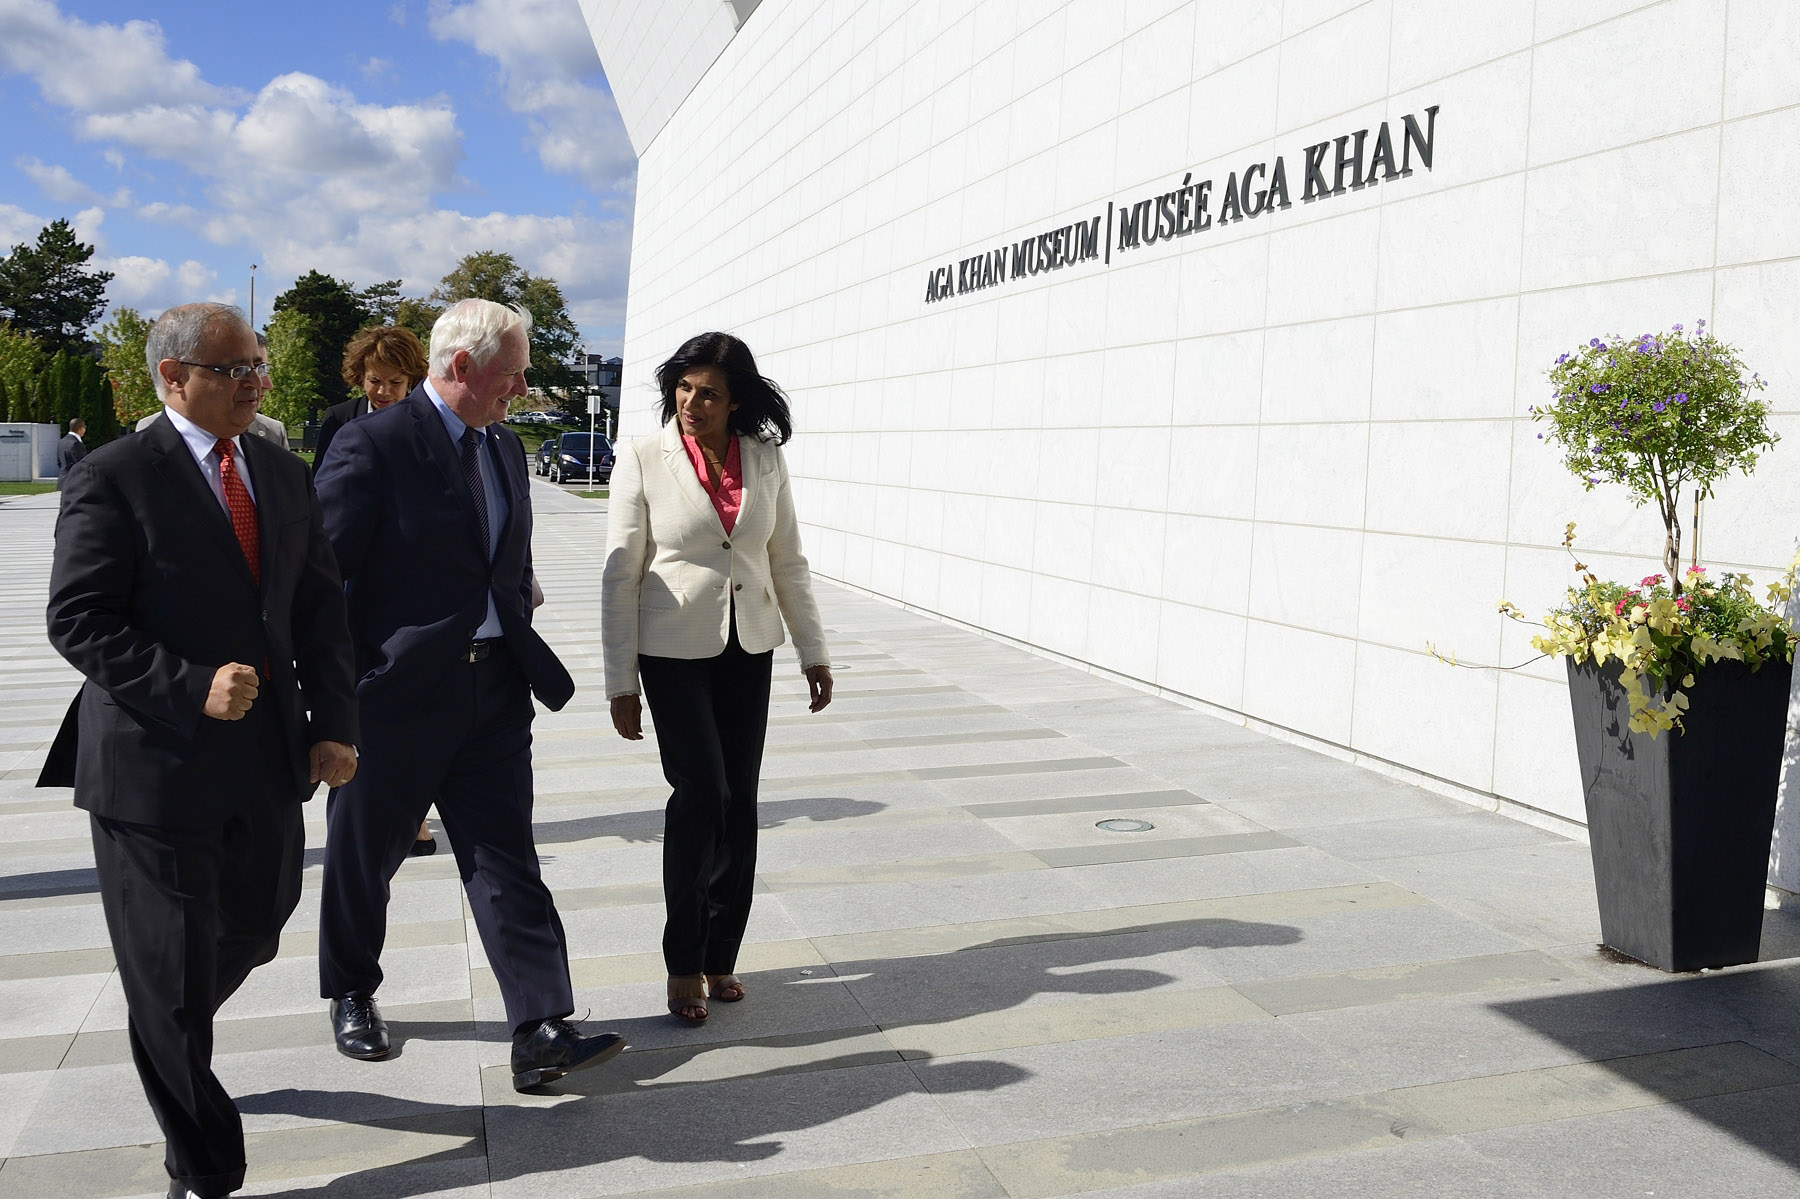 In the afternoon, the Governeur General visited the Aga Khan Museum in Toronto.